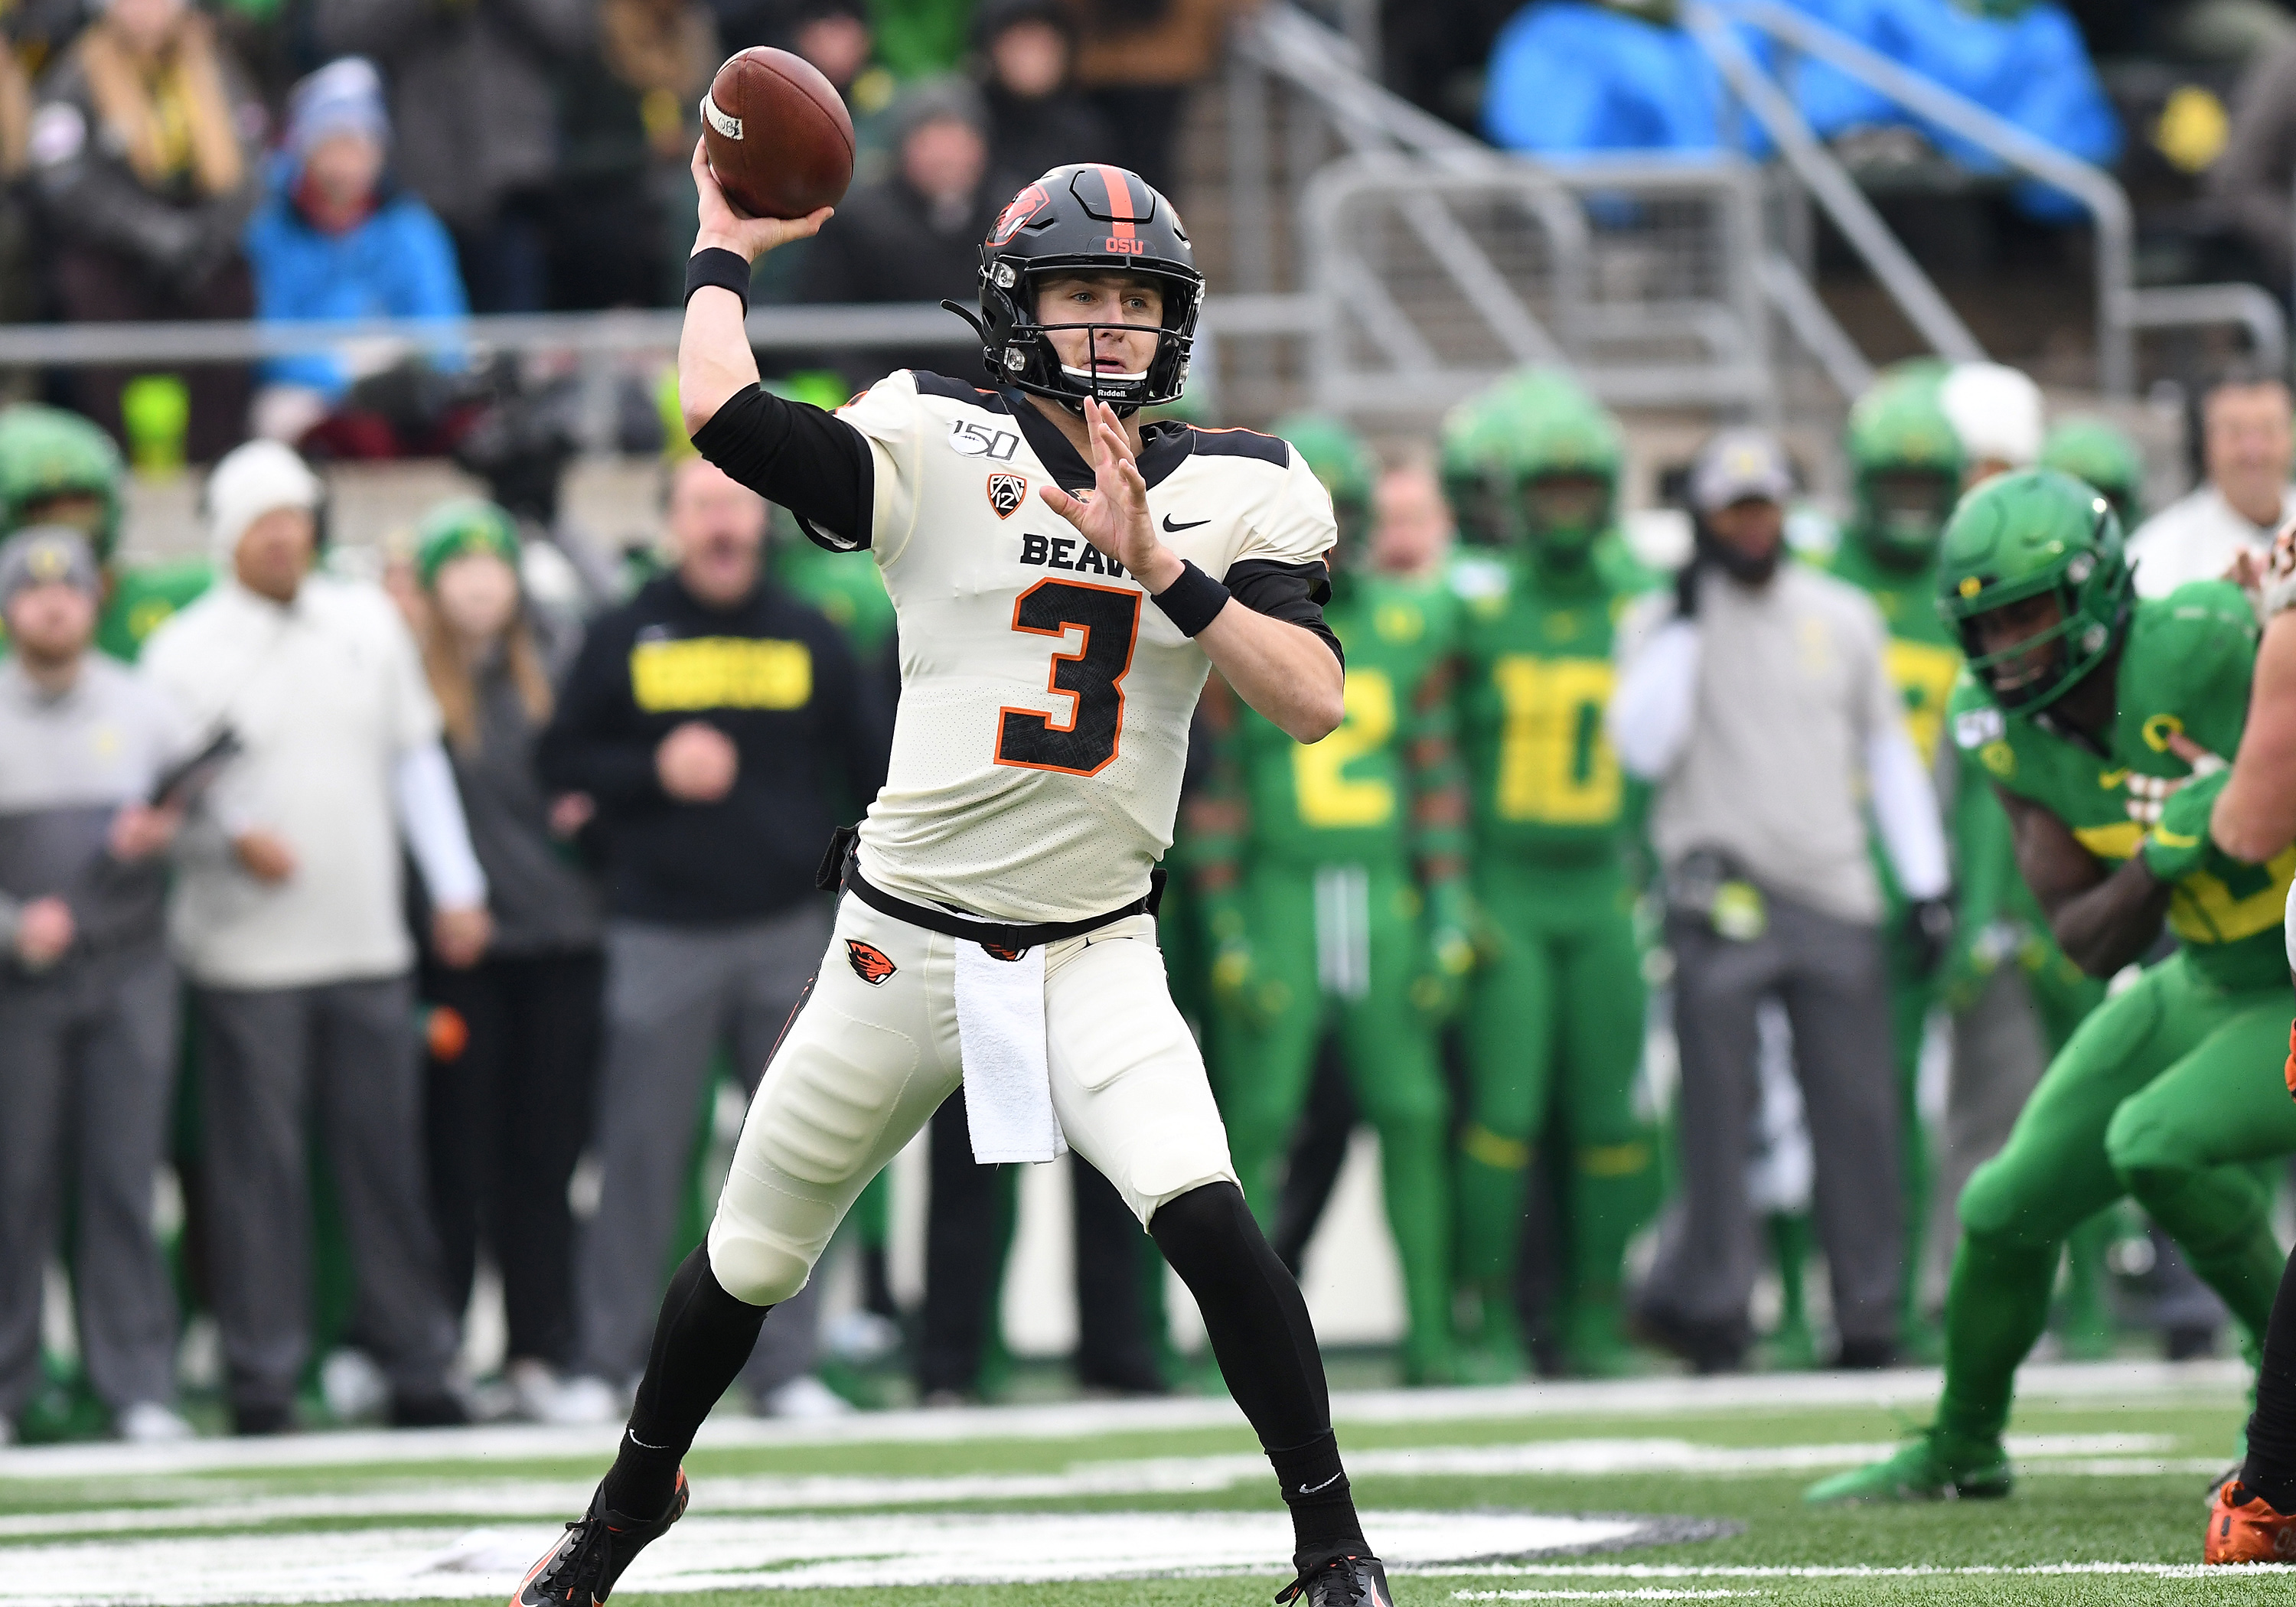 COLLEGE FOOTBALL: NOV 30 Oregon State at Oregon